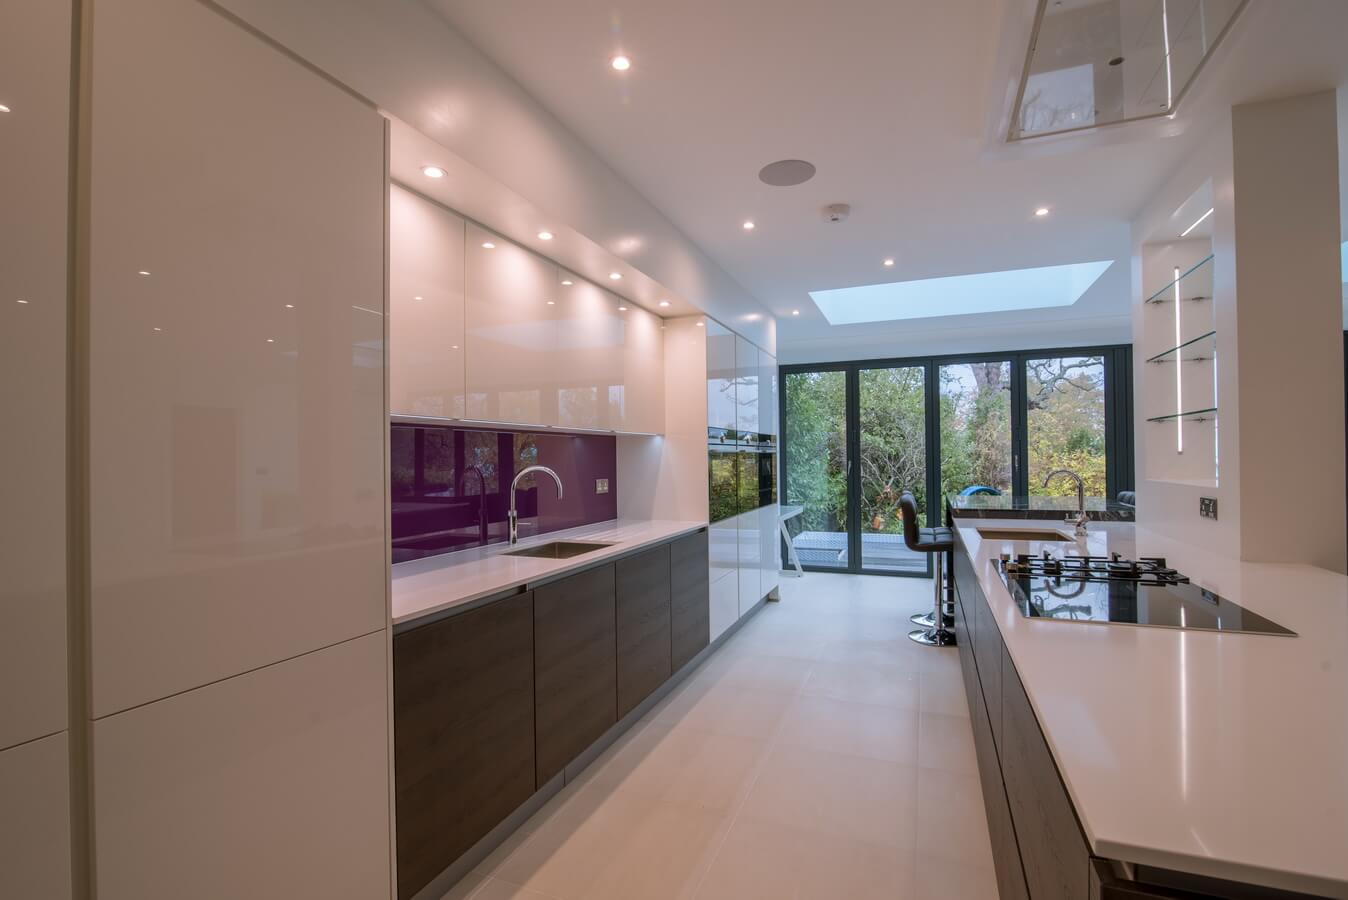 german-kitchen-glass-splashback-London.jpg